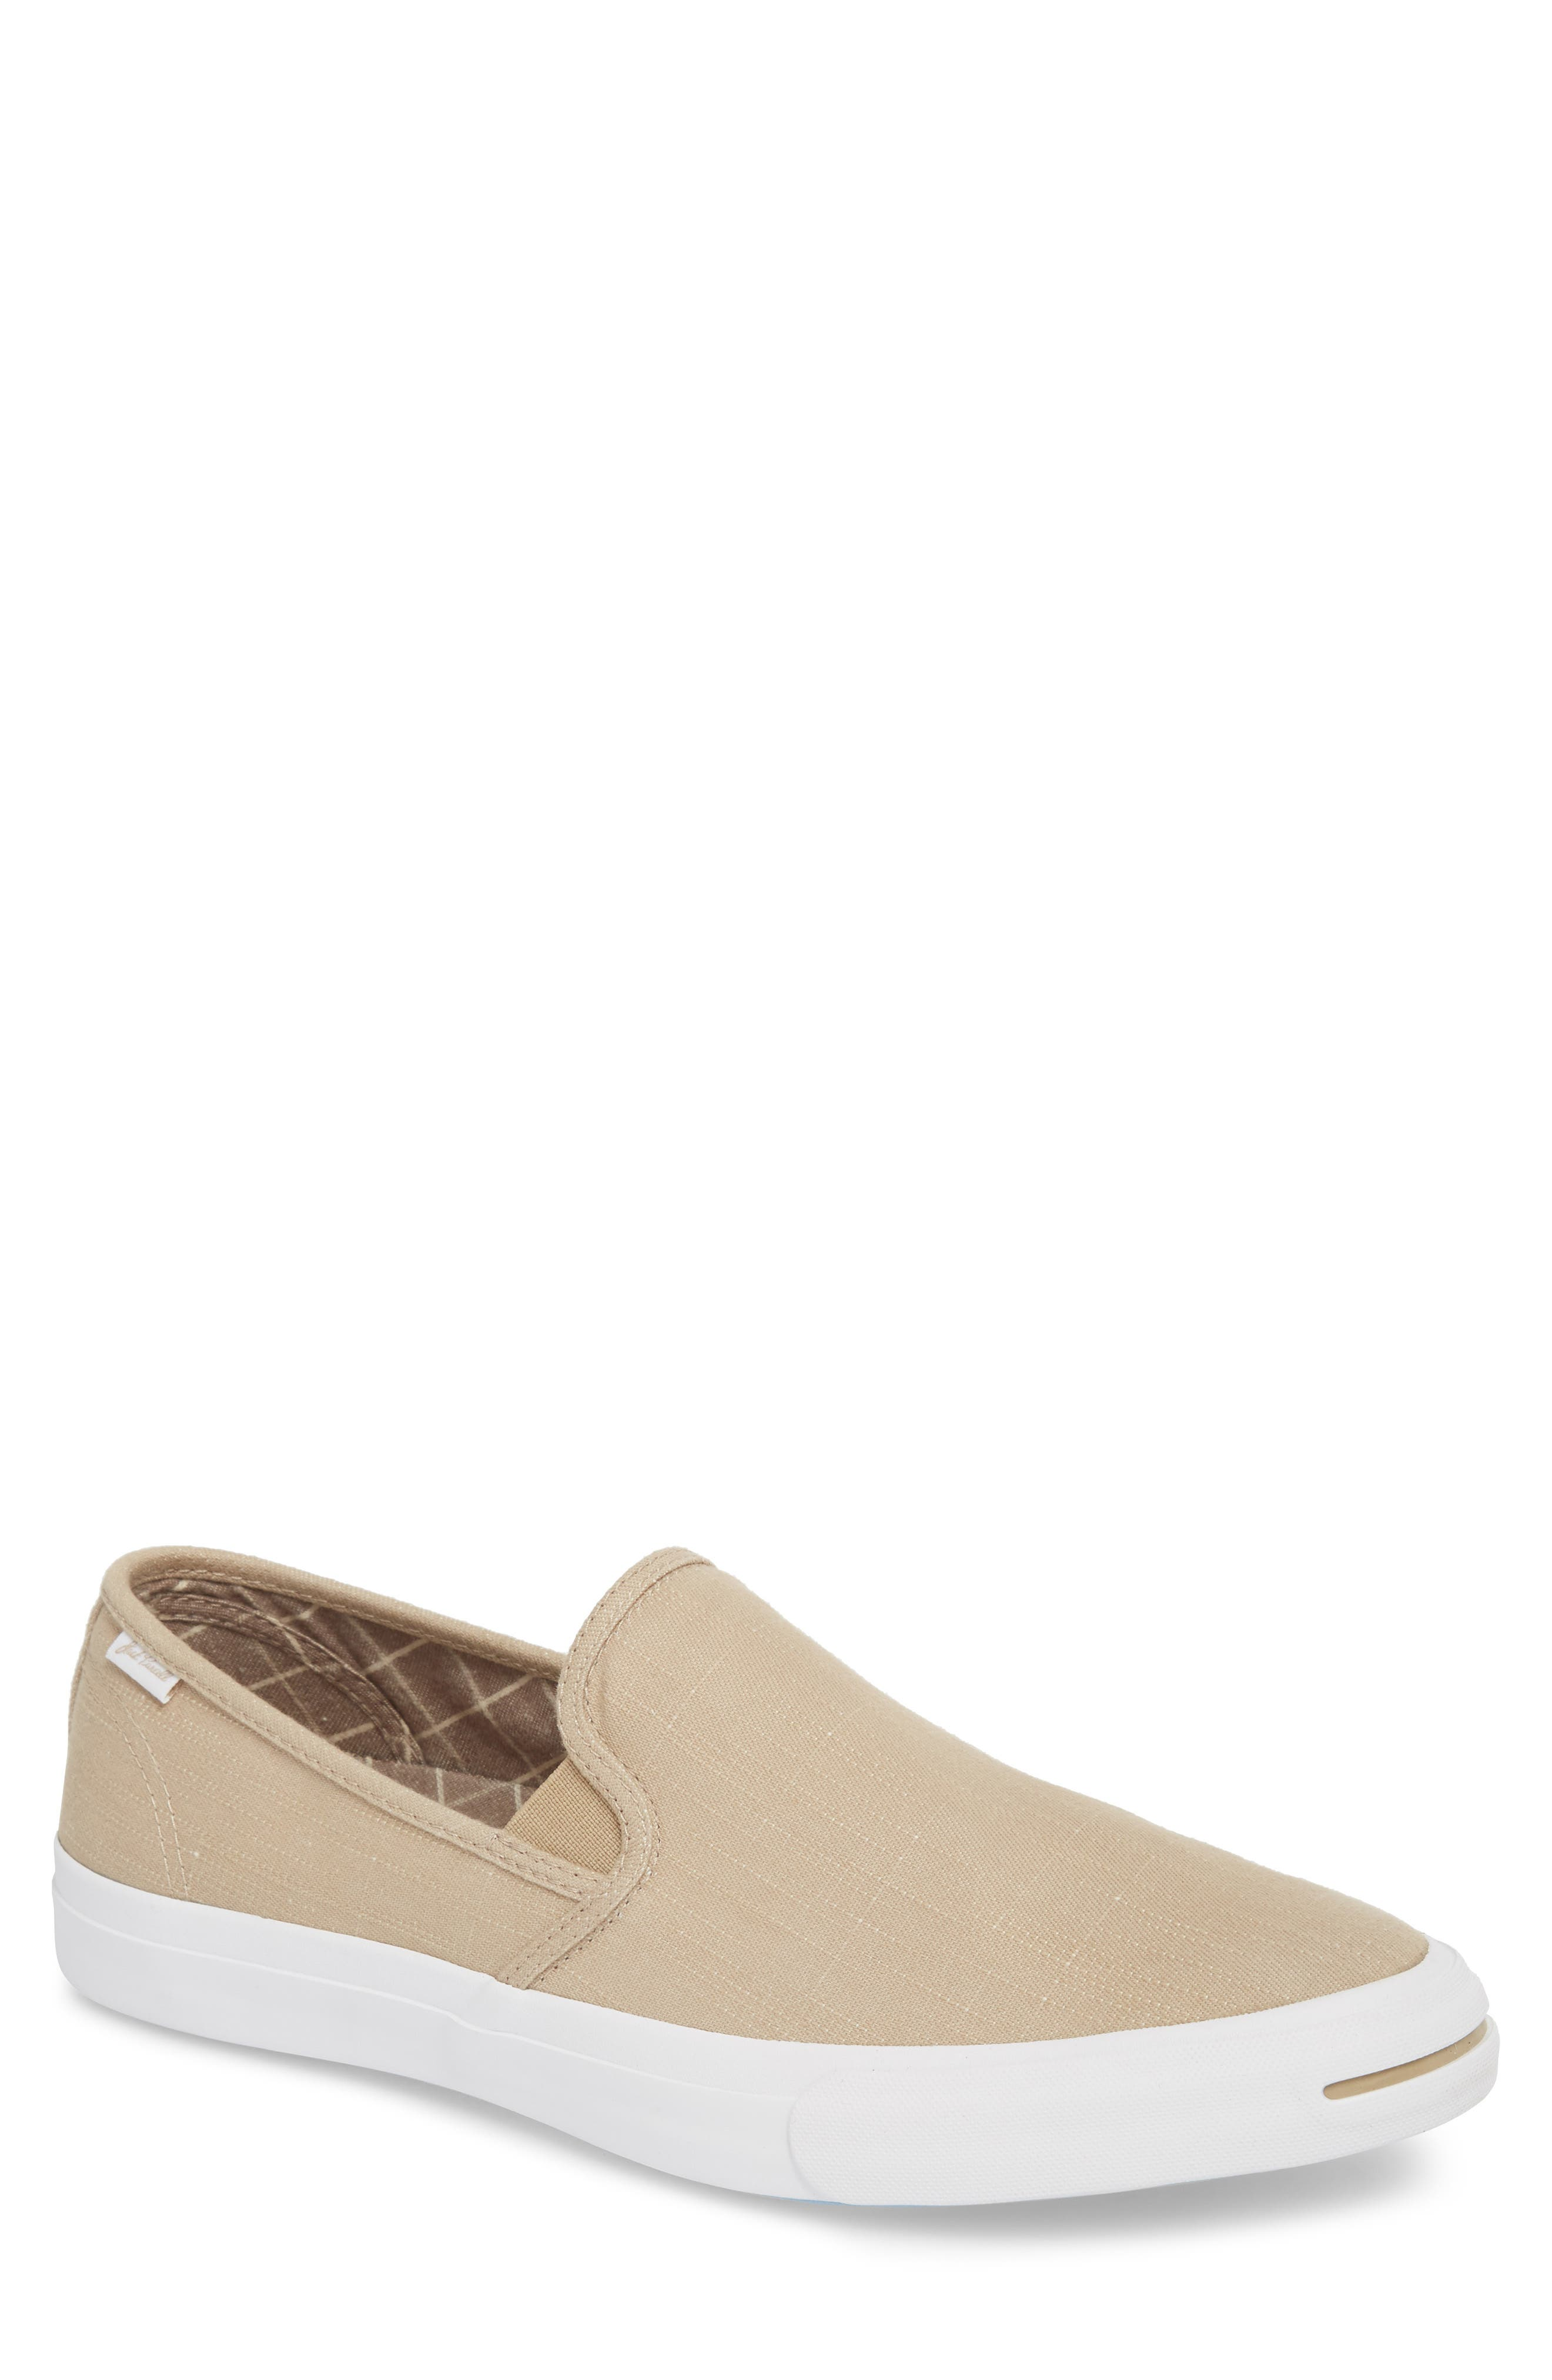 Alternate Image 1 Selected - Converse Jack Purcell Low Profile Slip-On Sneaker (Men)